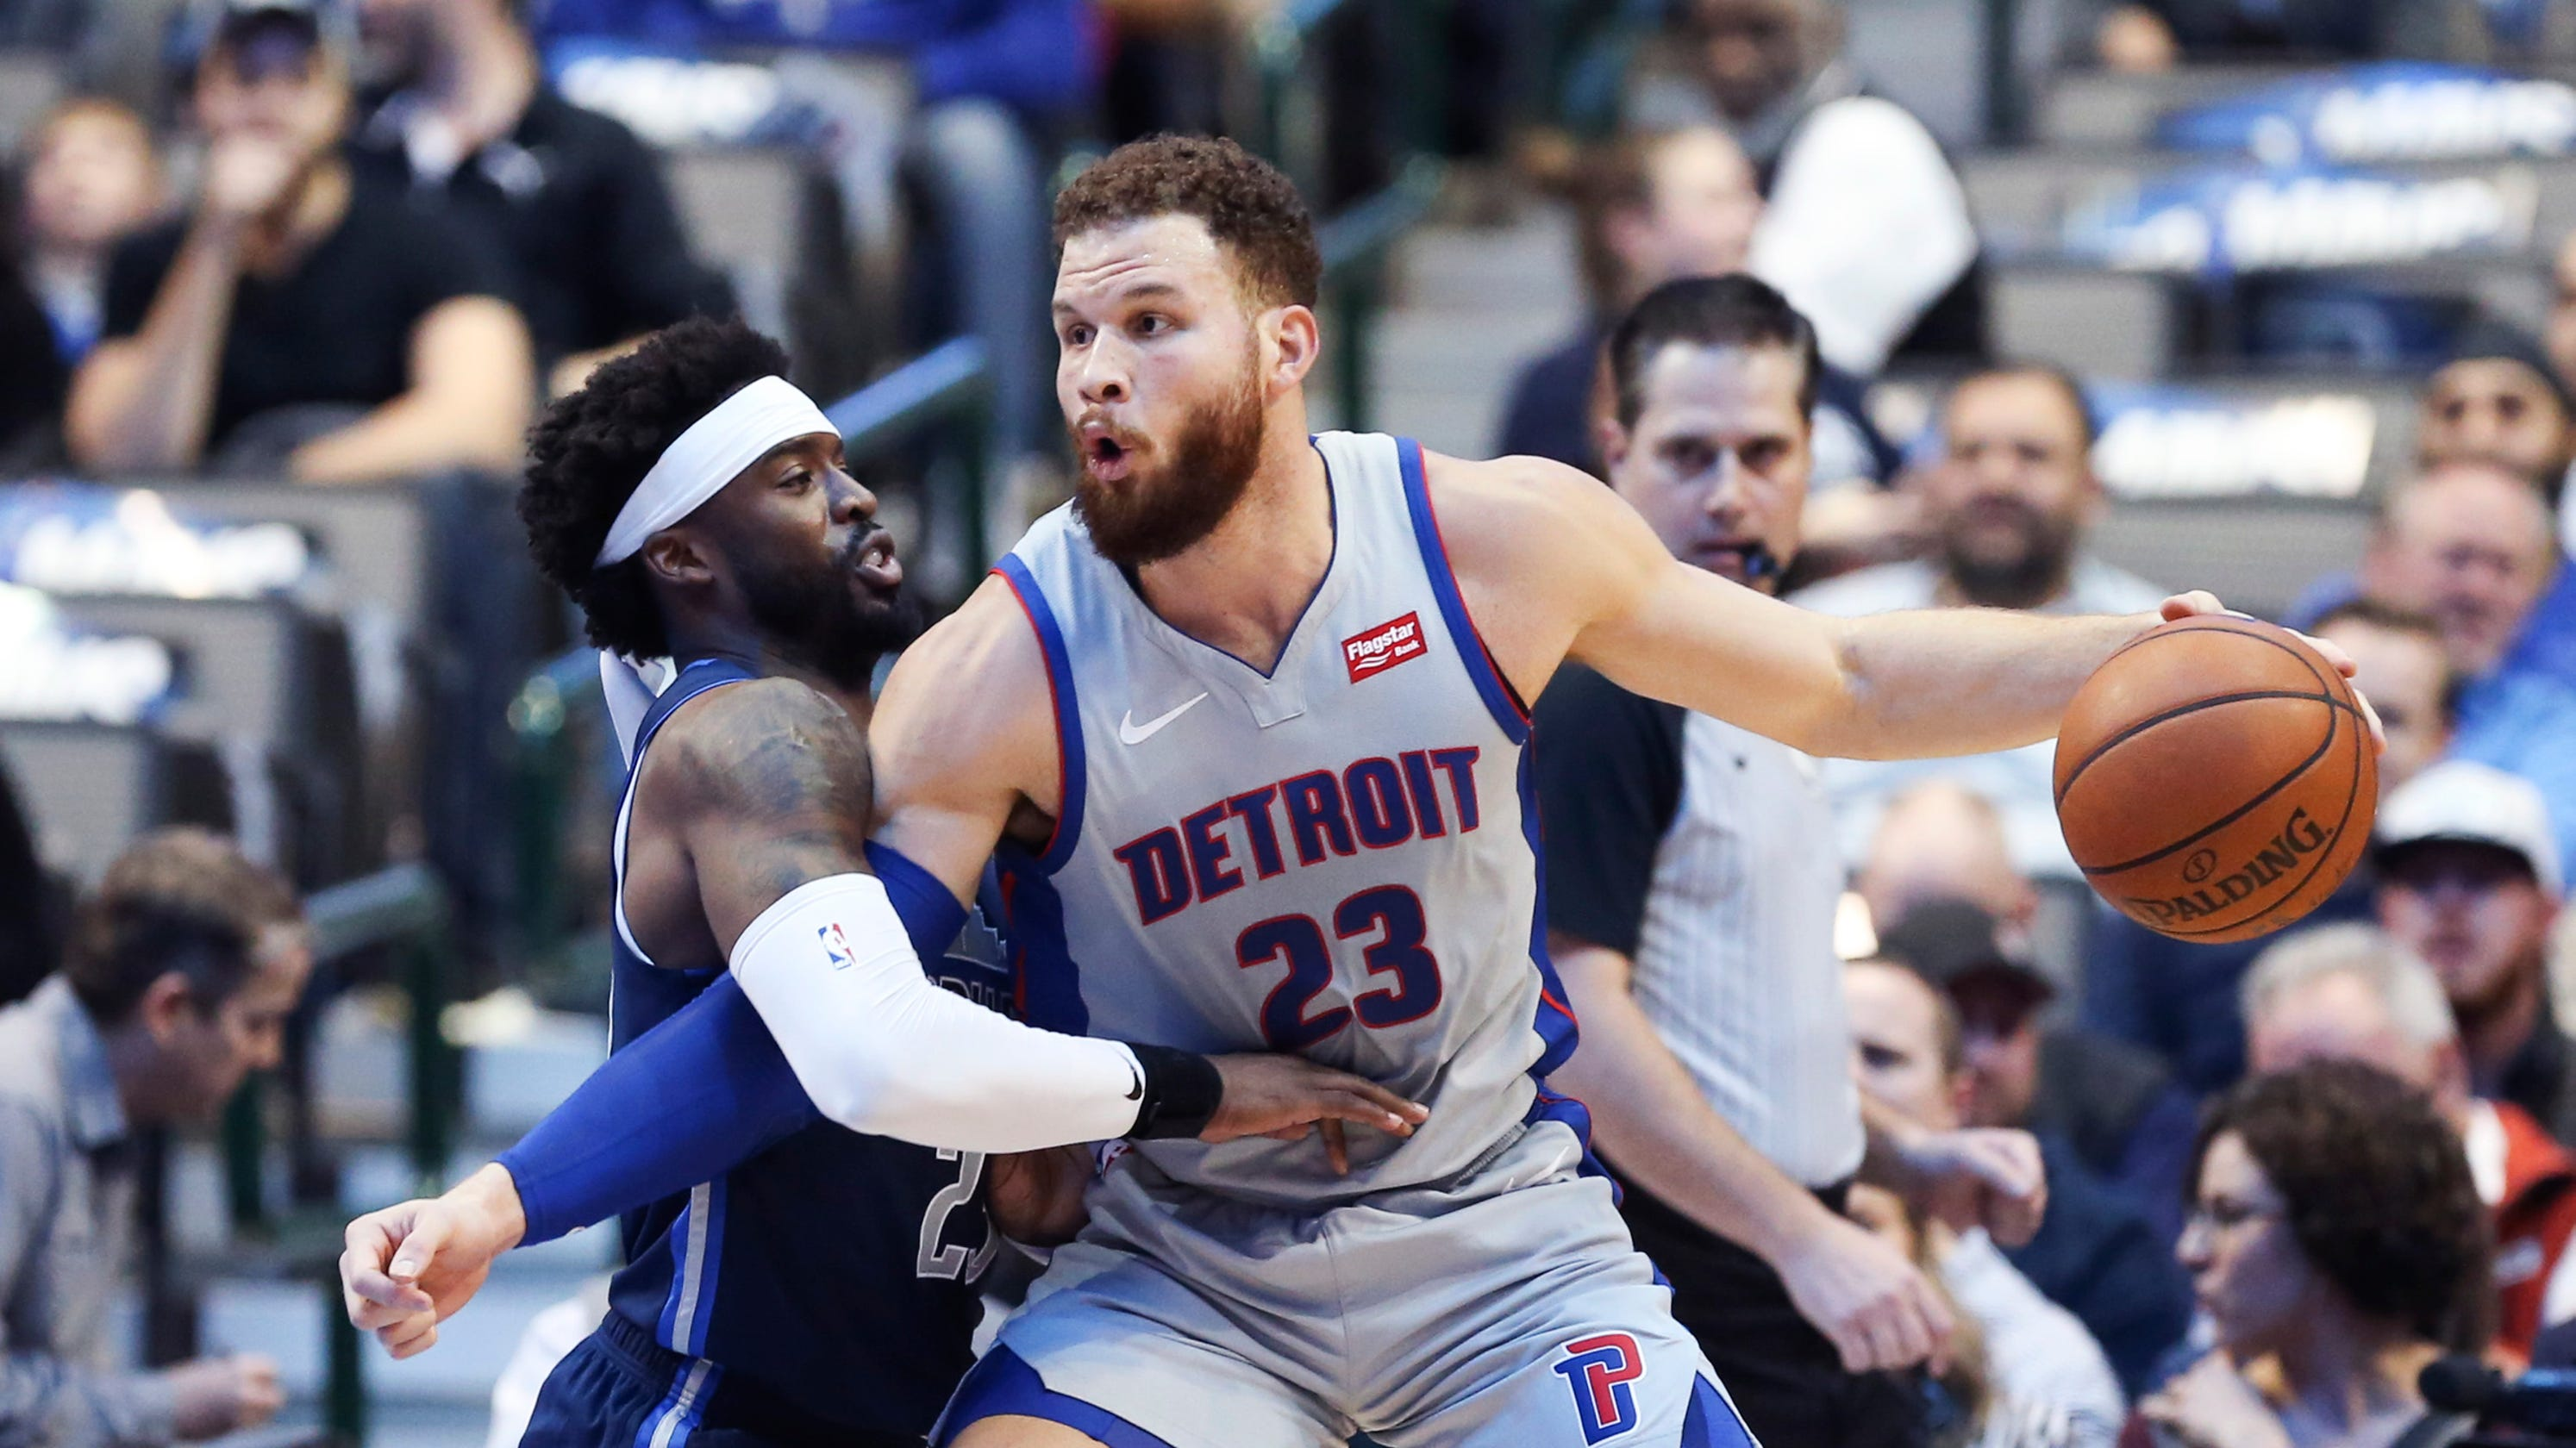 351e6abaf6b5 Detroit Pistons  Blake Griffin clears air  No beef with Reggie Jackson